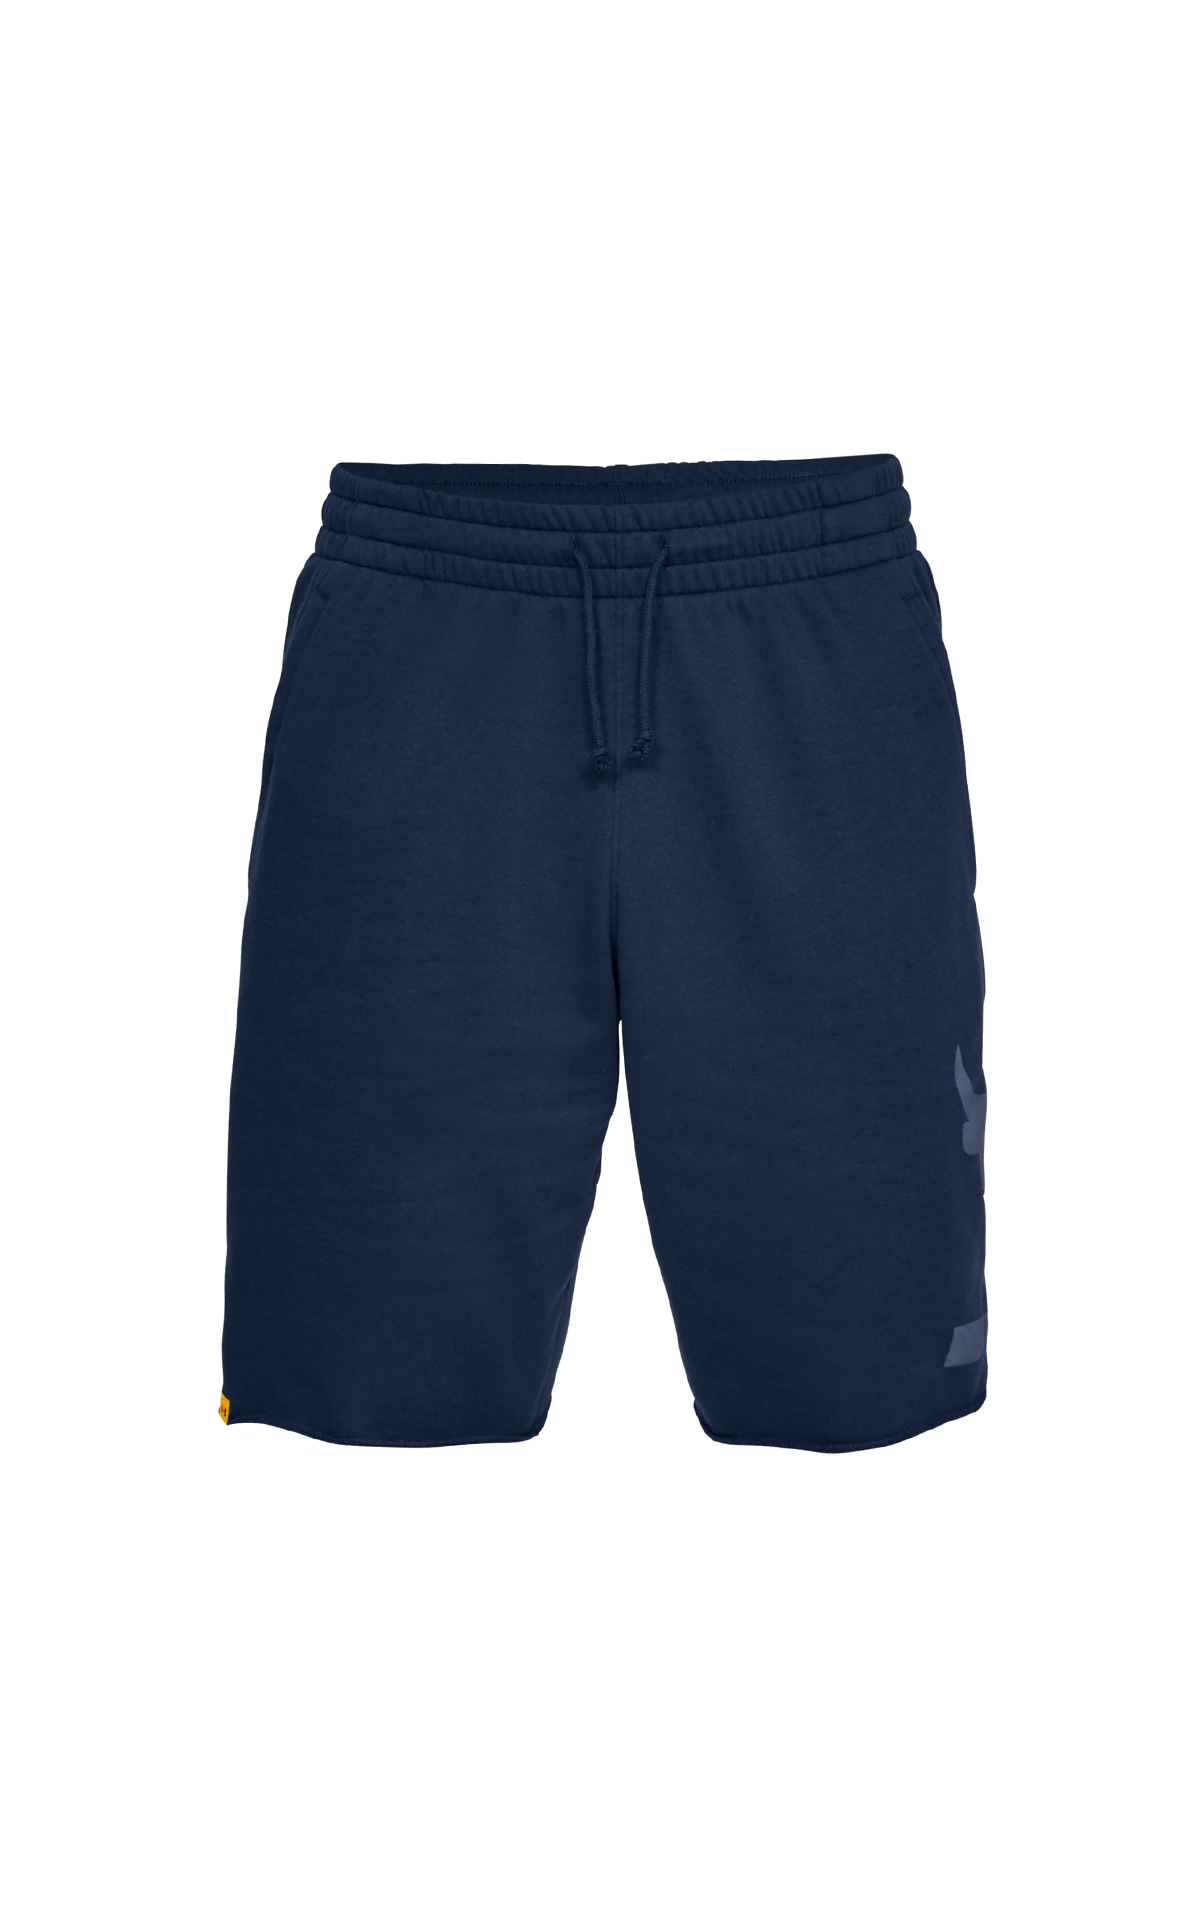 Under Armour shorts at The Bicester Village Shopping Collection